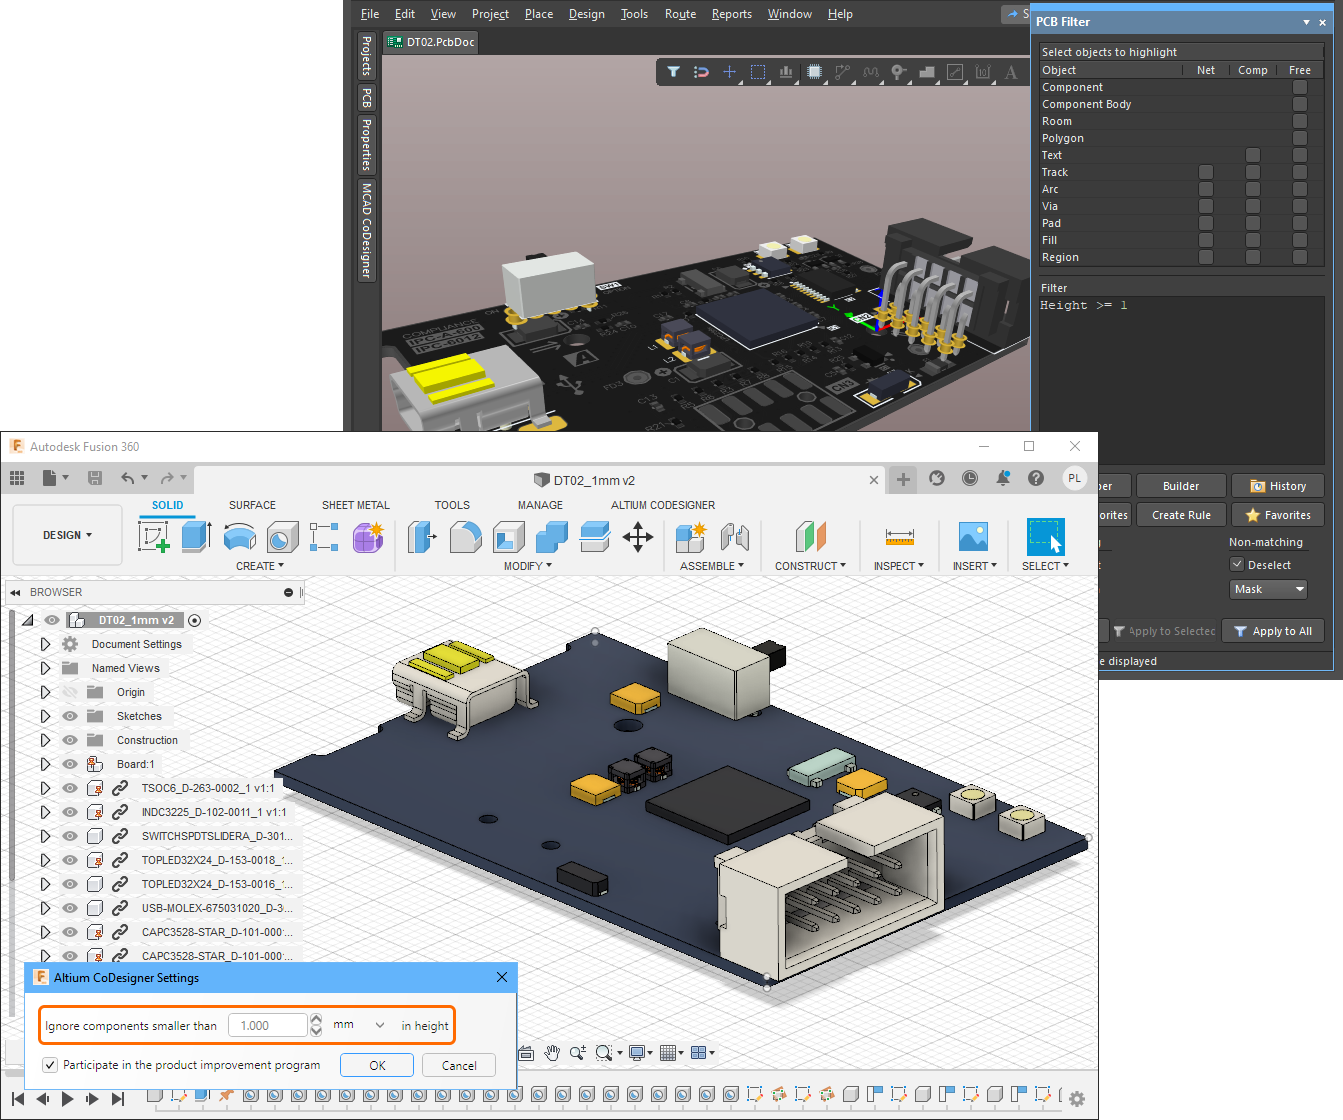 Small components can be excluded during Pull by setting the Height threshold (hover the cursor over to see the board in ECAD).